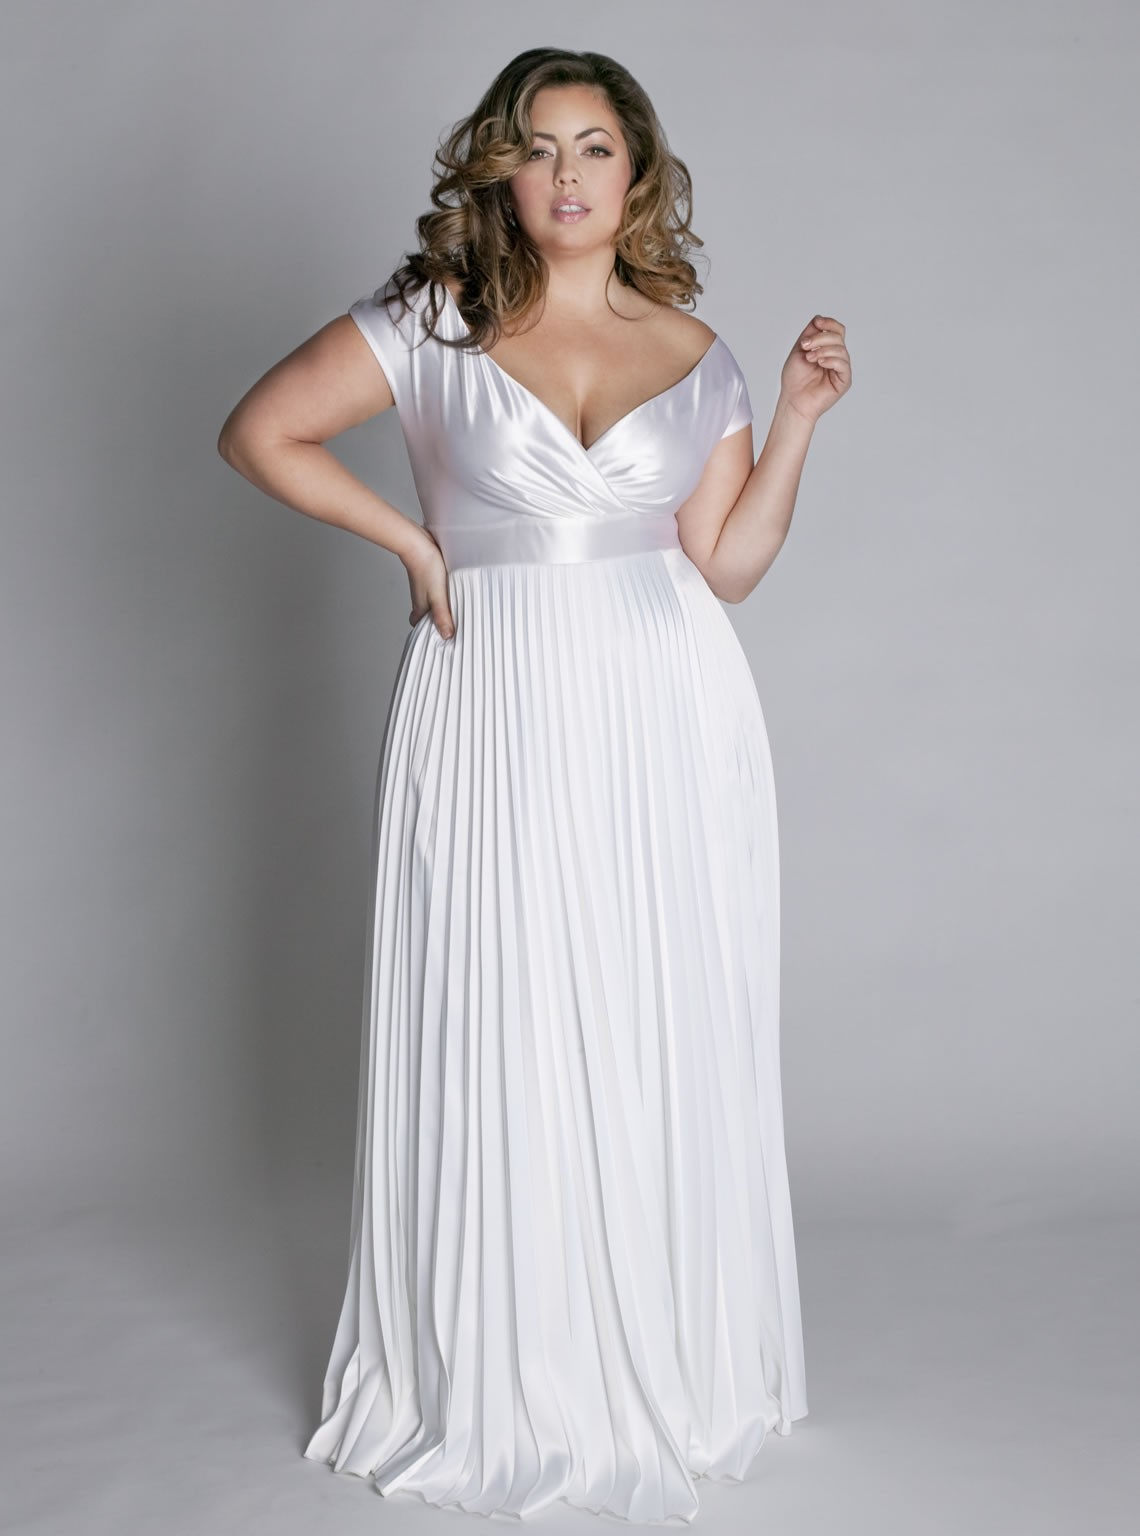 Women Plus Size Dresses | Women Dresses